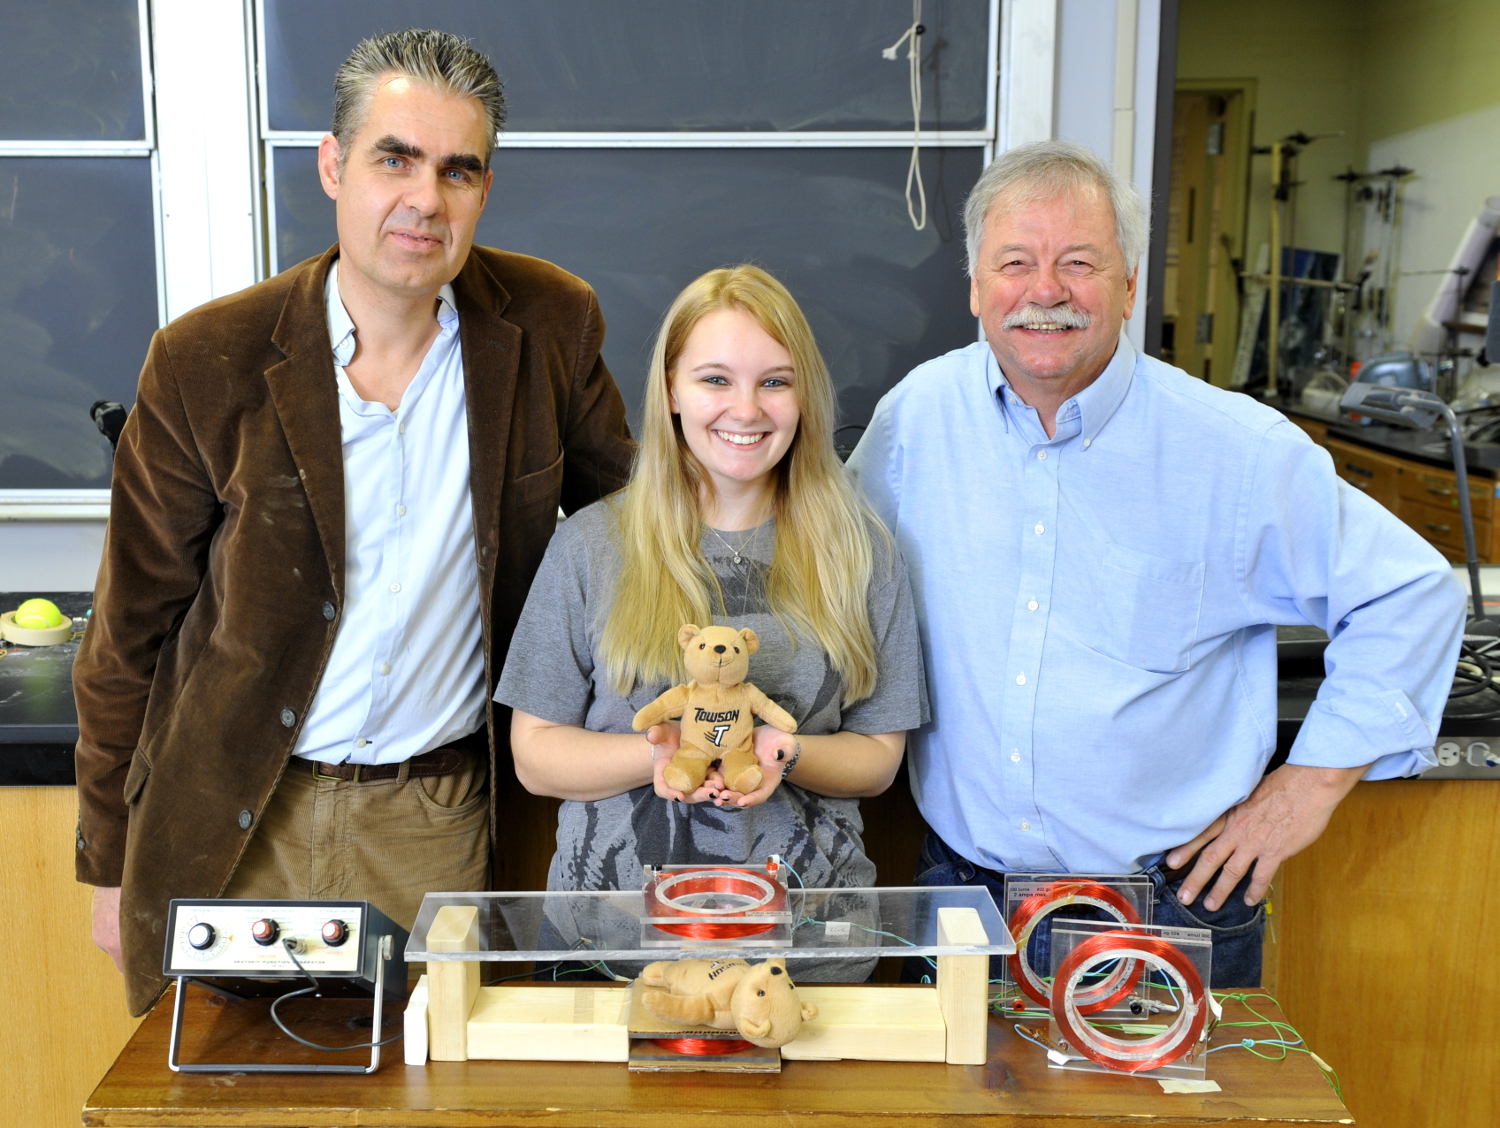 Detecting the bullet in the bear with a reconstruction of Alexander Graham Bell's induction balance (with Jim Selway, 2013)